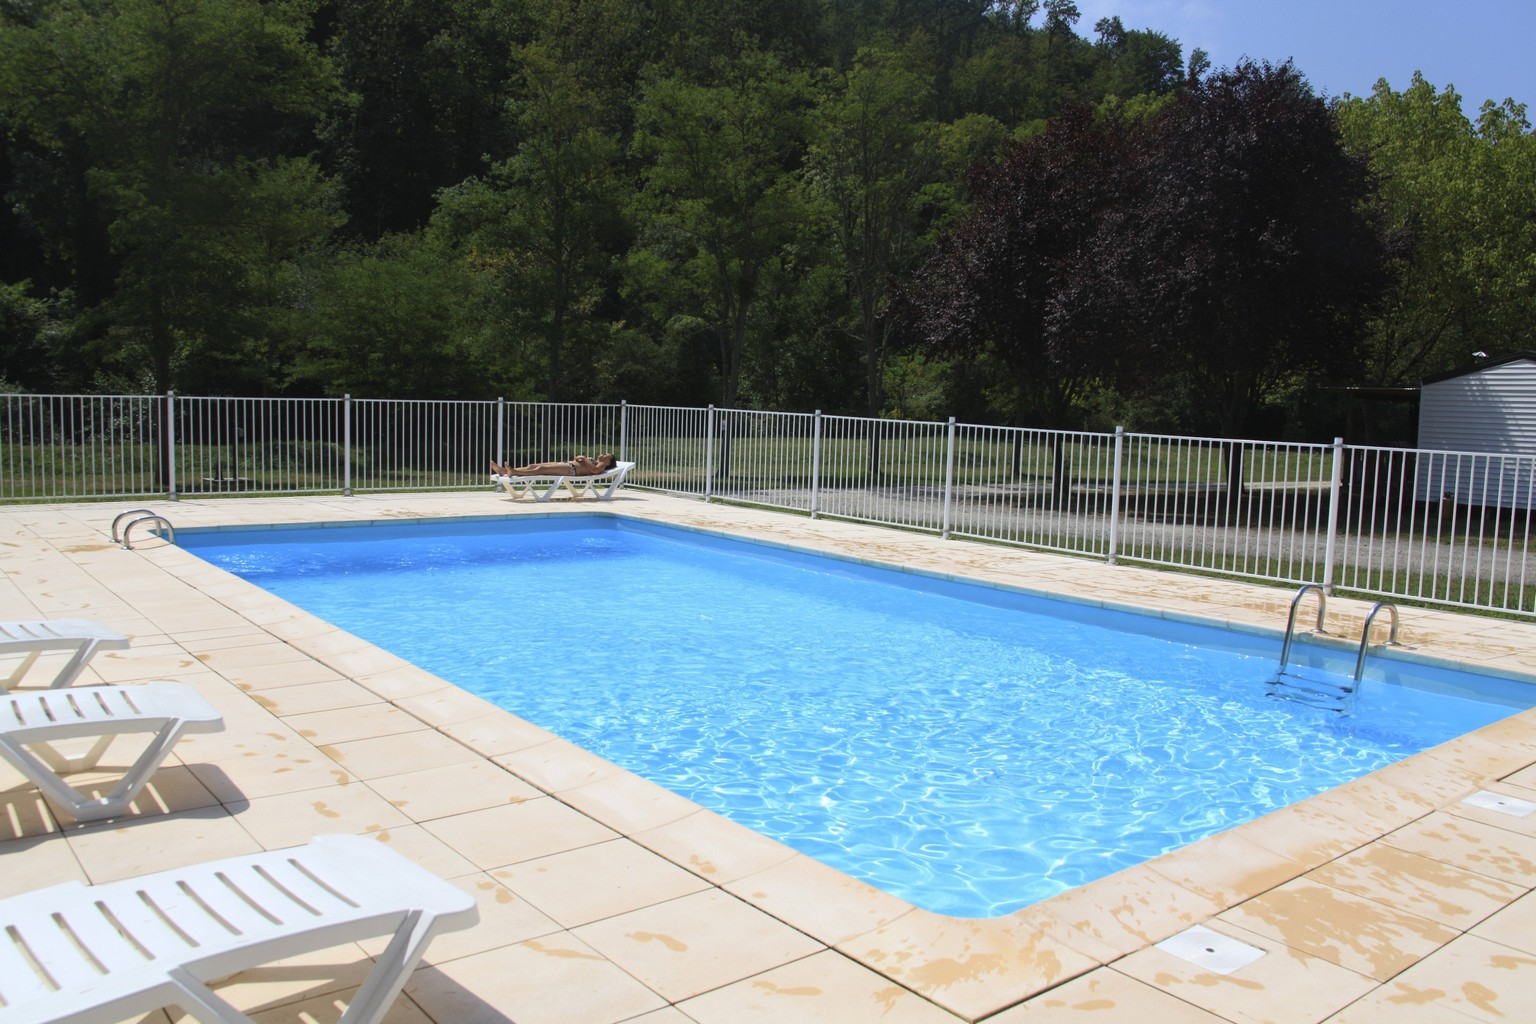 Barri res de protection de piscine faire le bon choix for Barrieres protection piscine